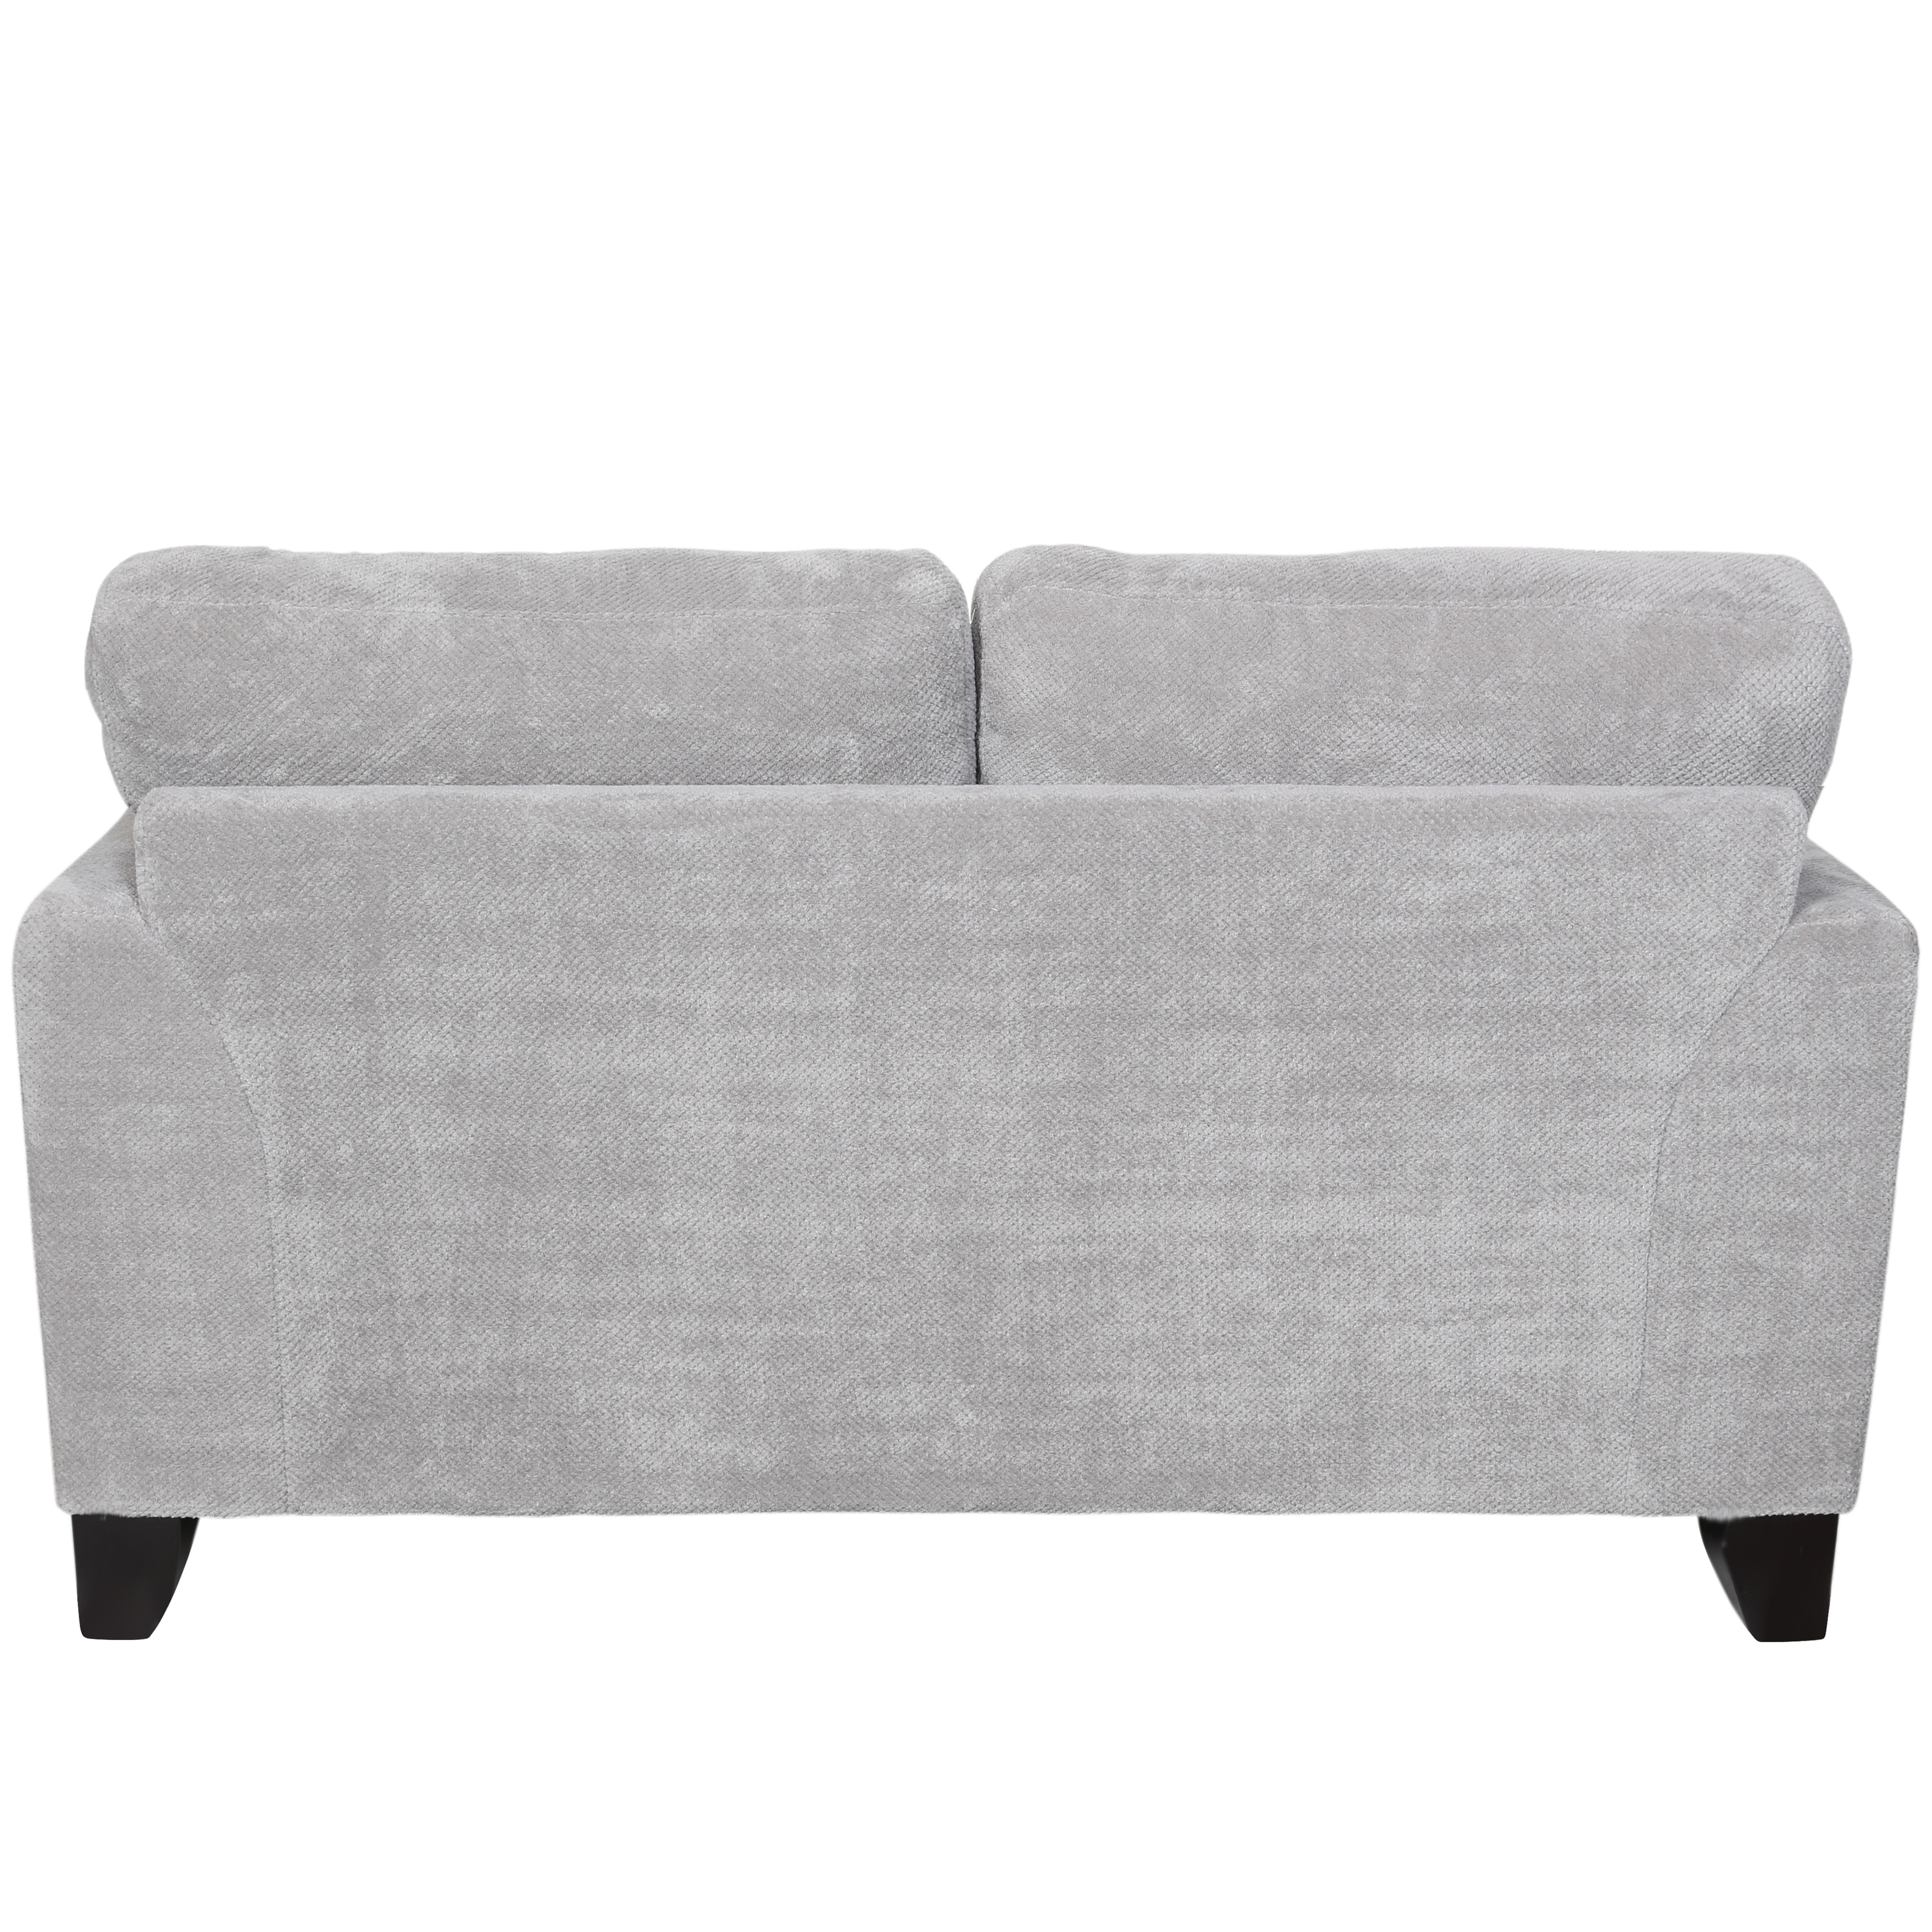 emilia love bellini living loveseat loveseats modern wht contemporary seat white sea